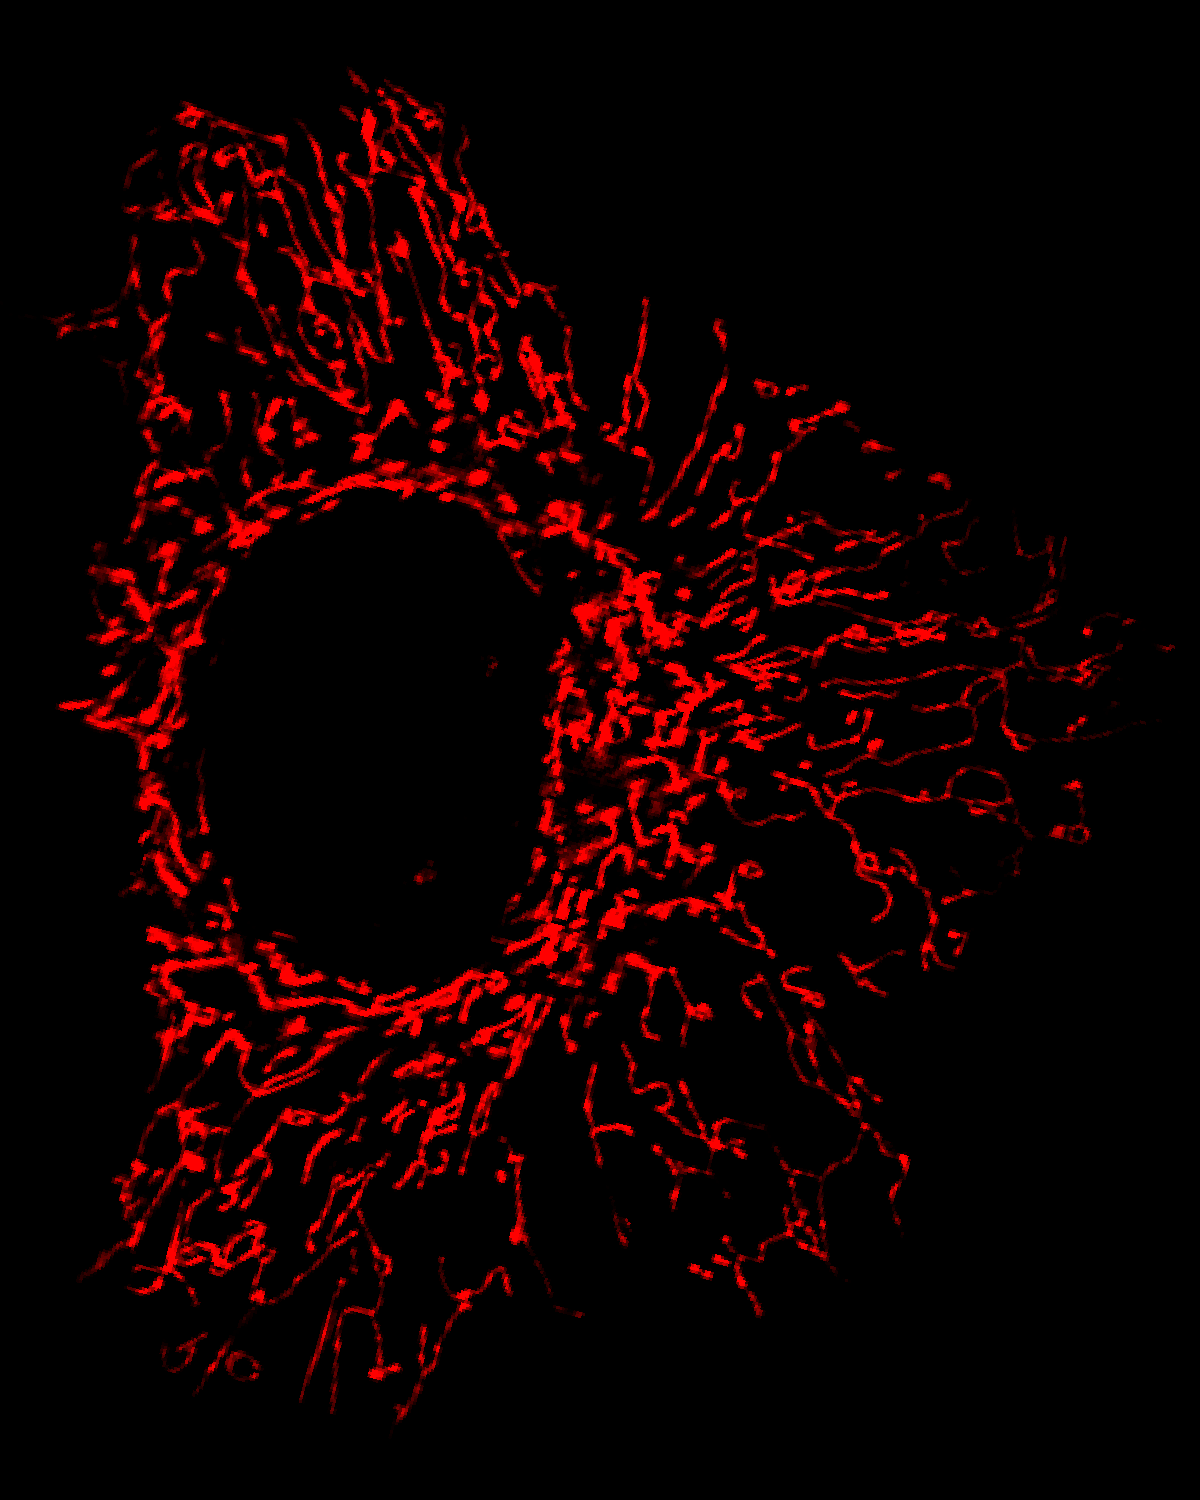 The mitochondrial network of a U2OS cell